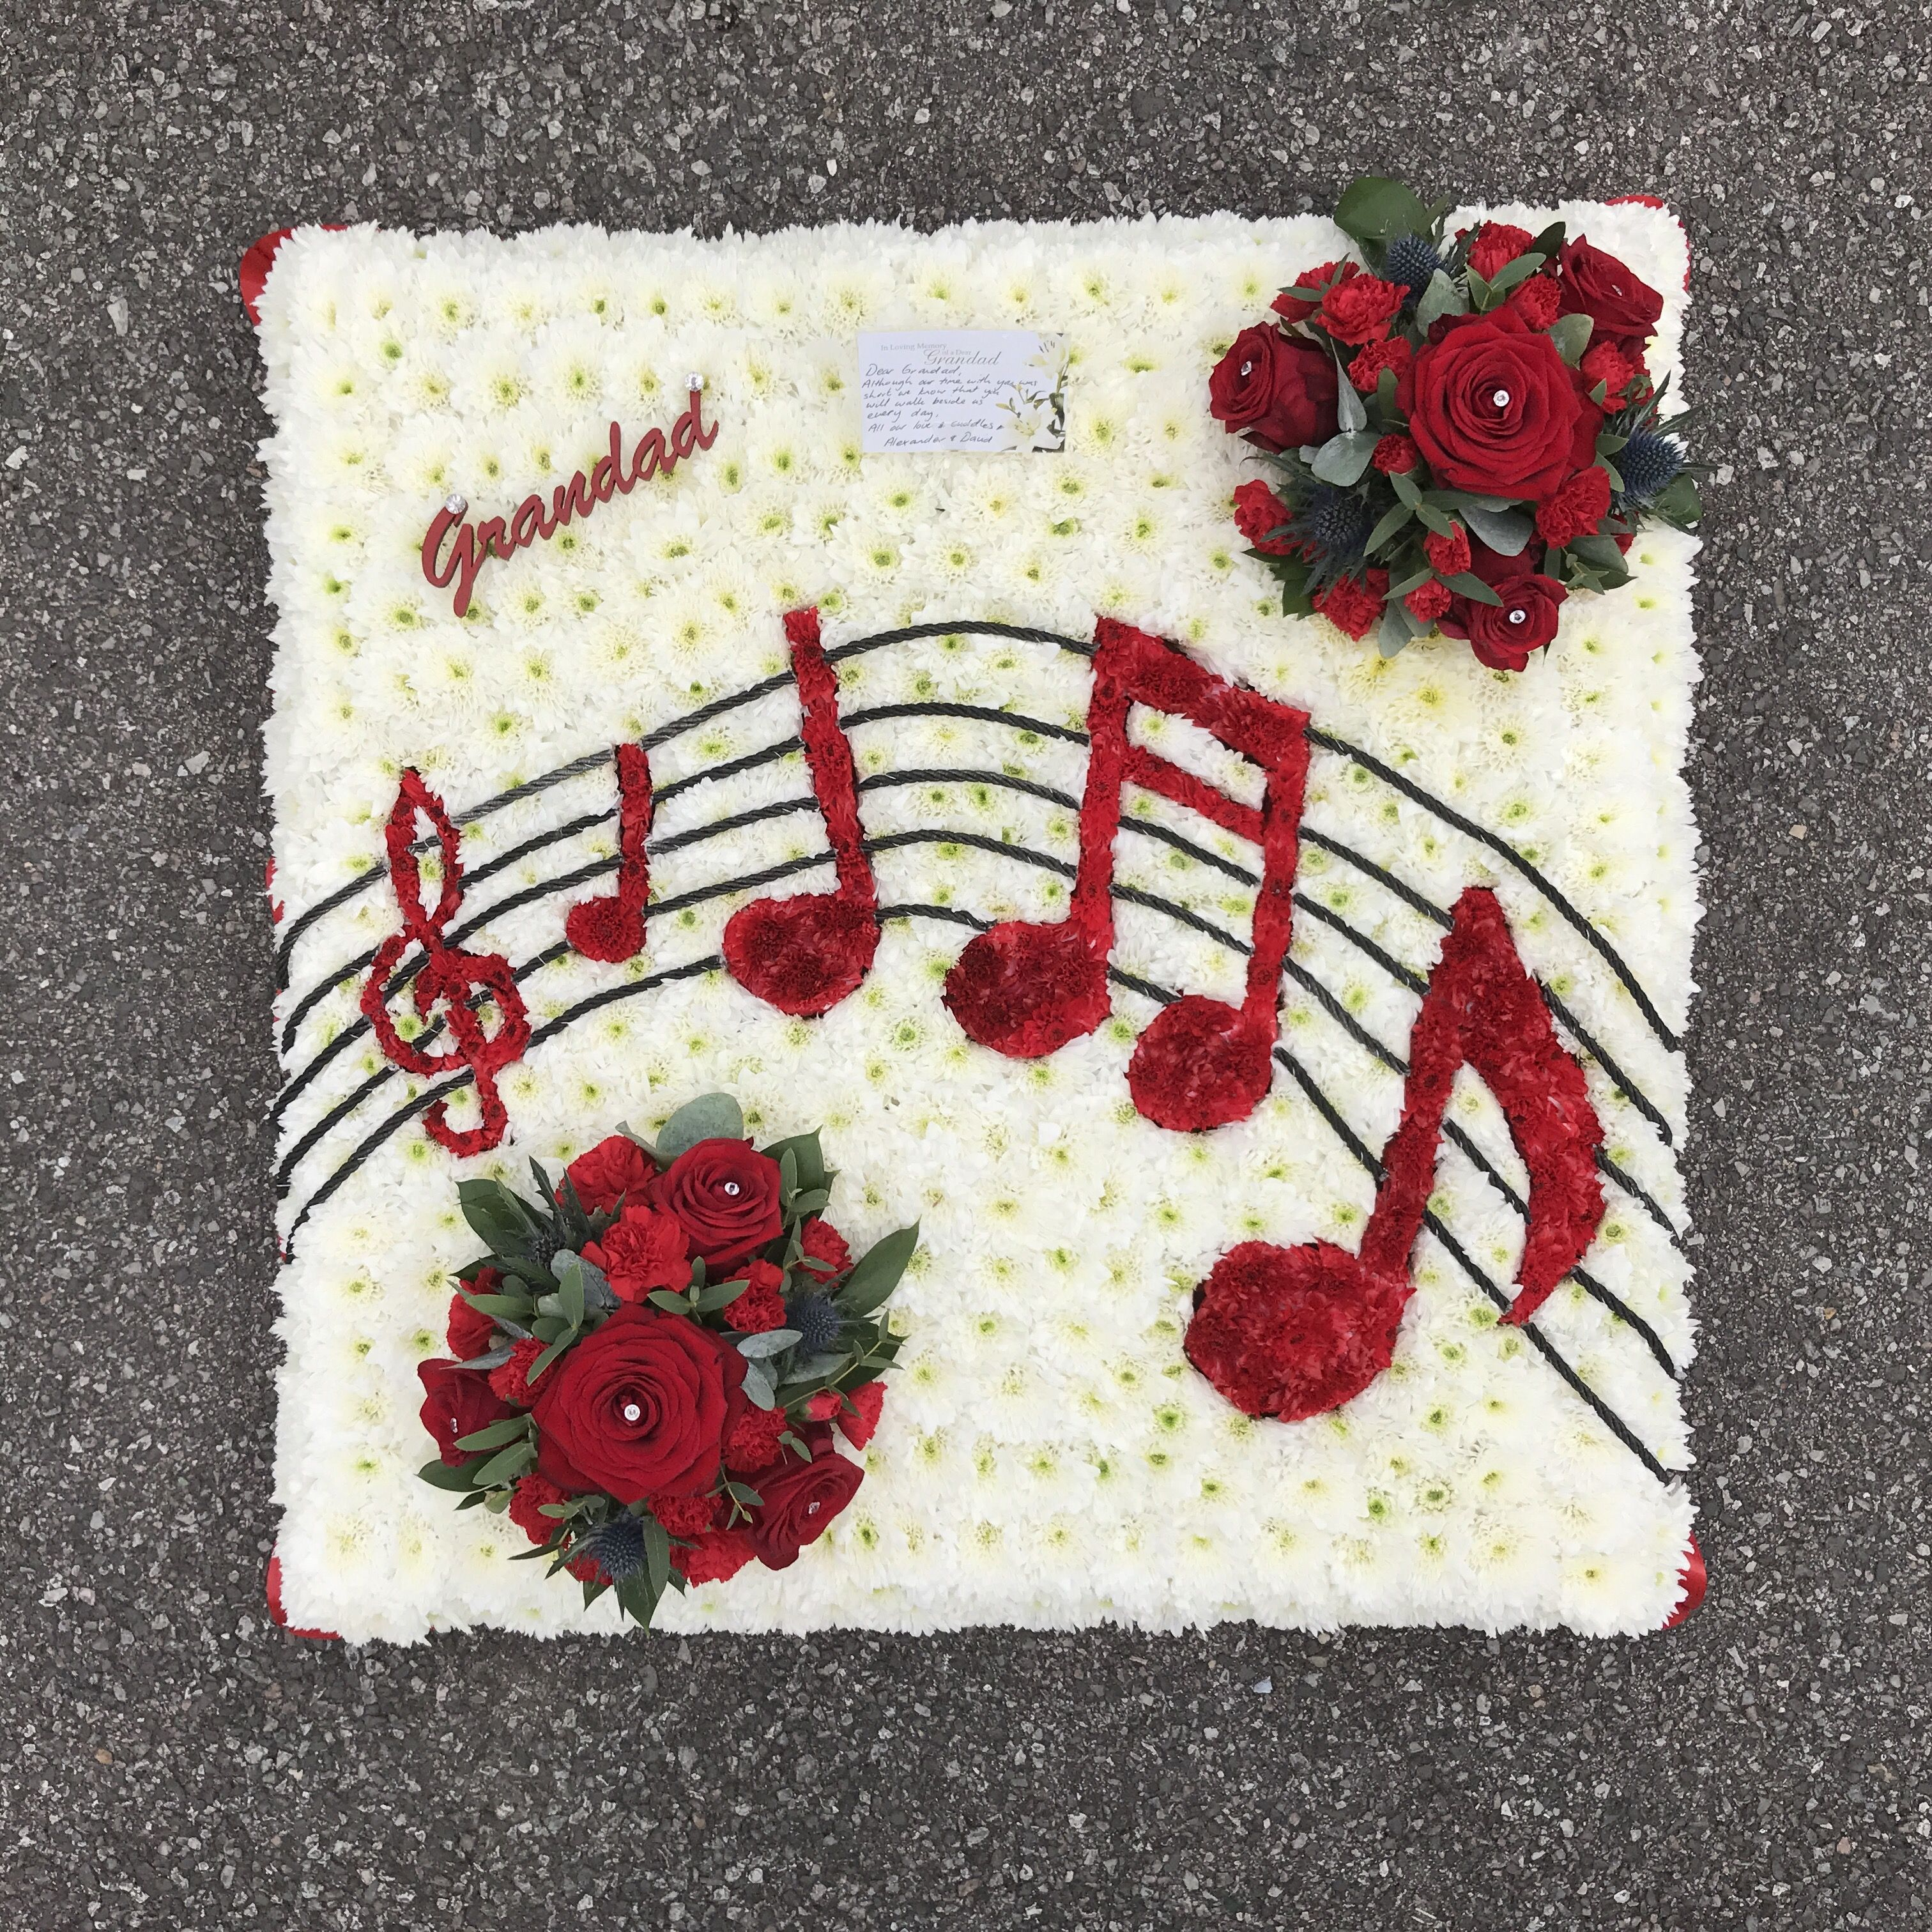 White based musical note funeral tribute with red and black white based musical note funeral tribute with red and black detailing and red rose focal flower izmirmasajfo Gallery